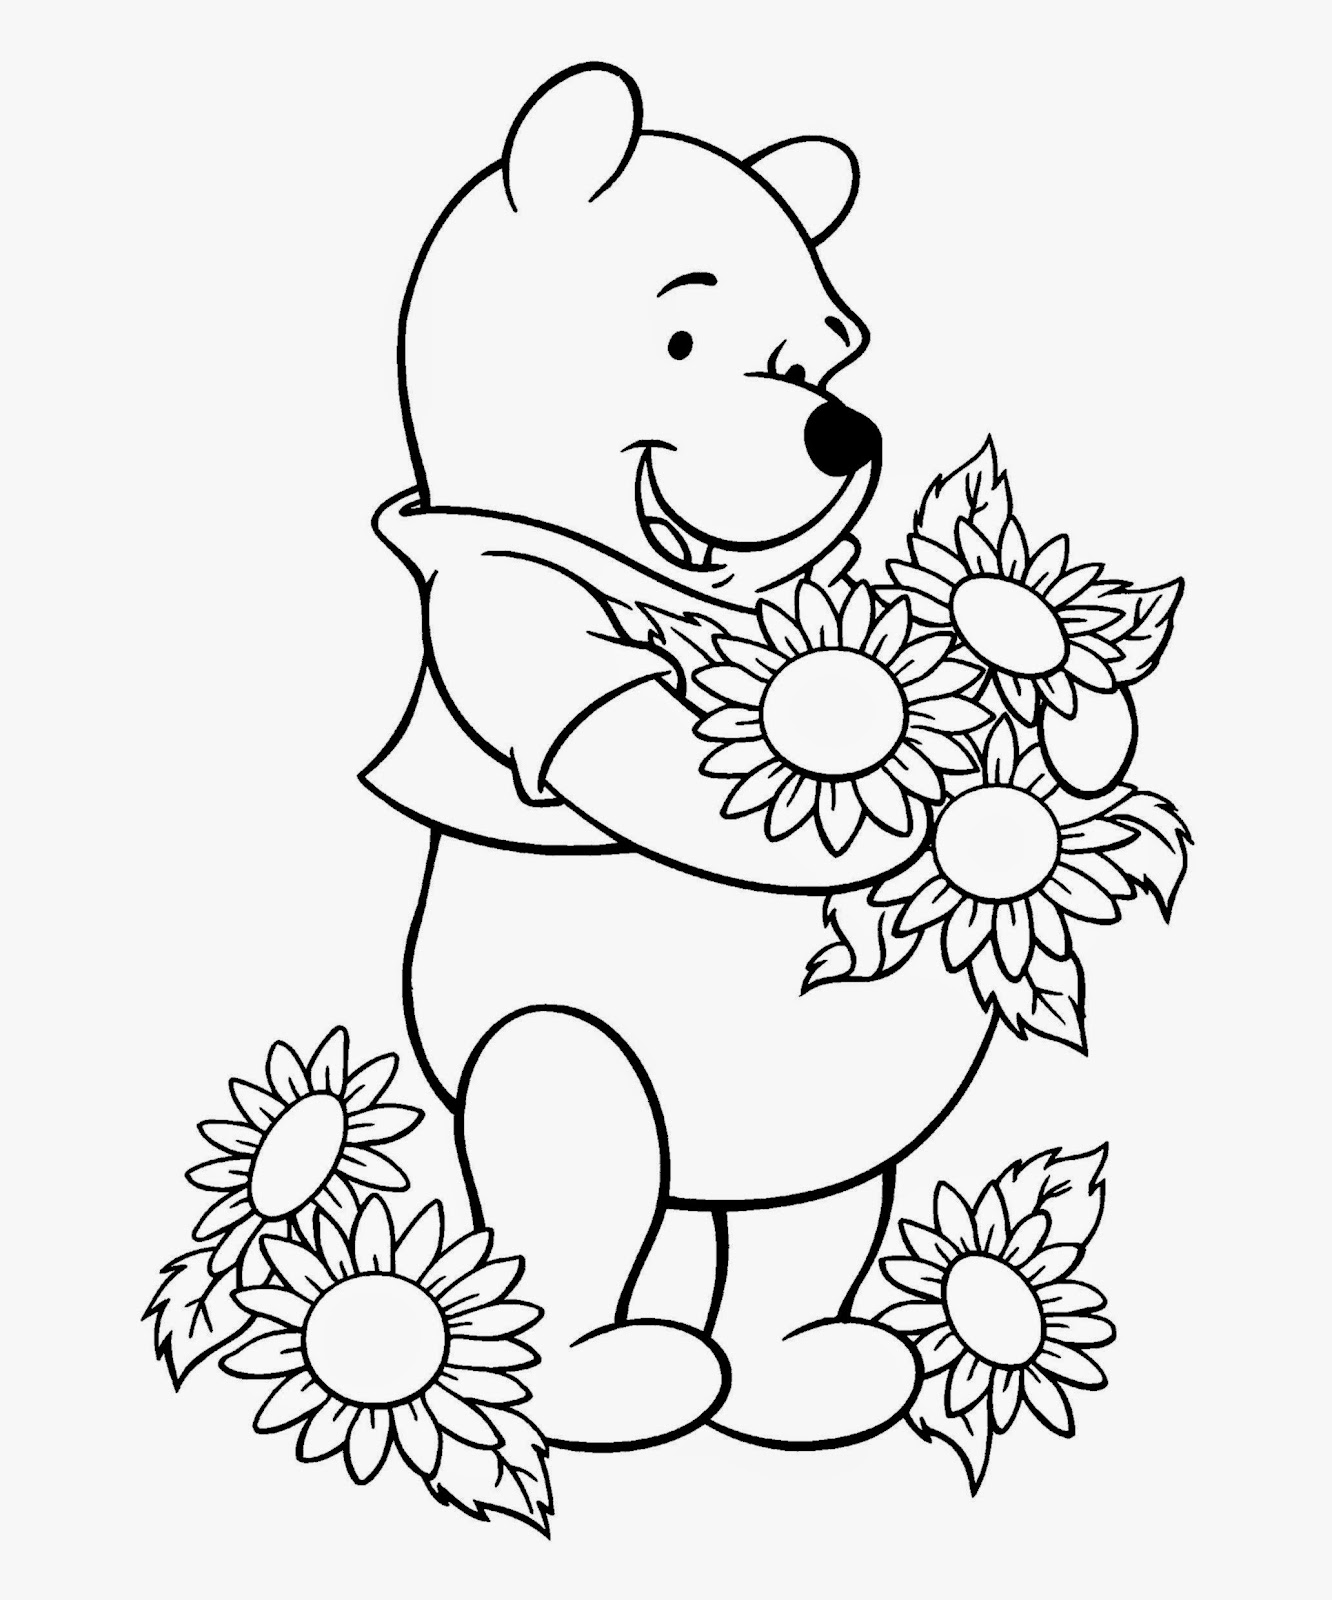 coloring pages of winnie the pooh and | Winnie The Pooh Coloring Sheets | Free Coloring Sheet